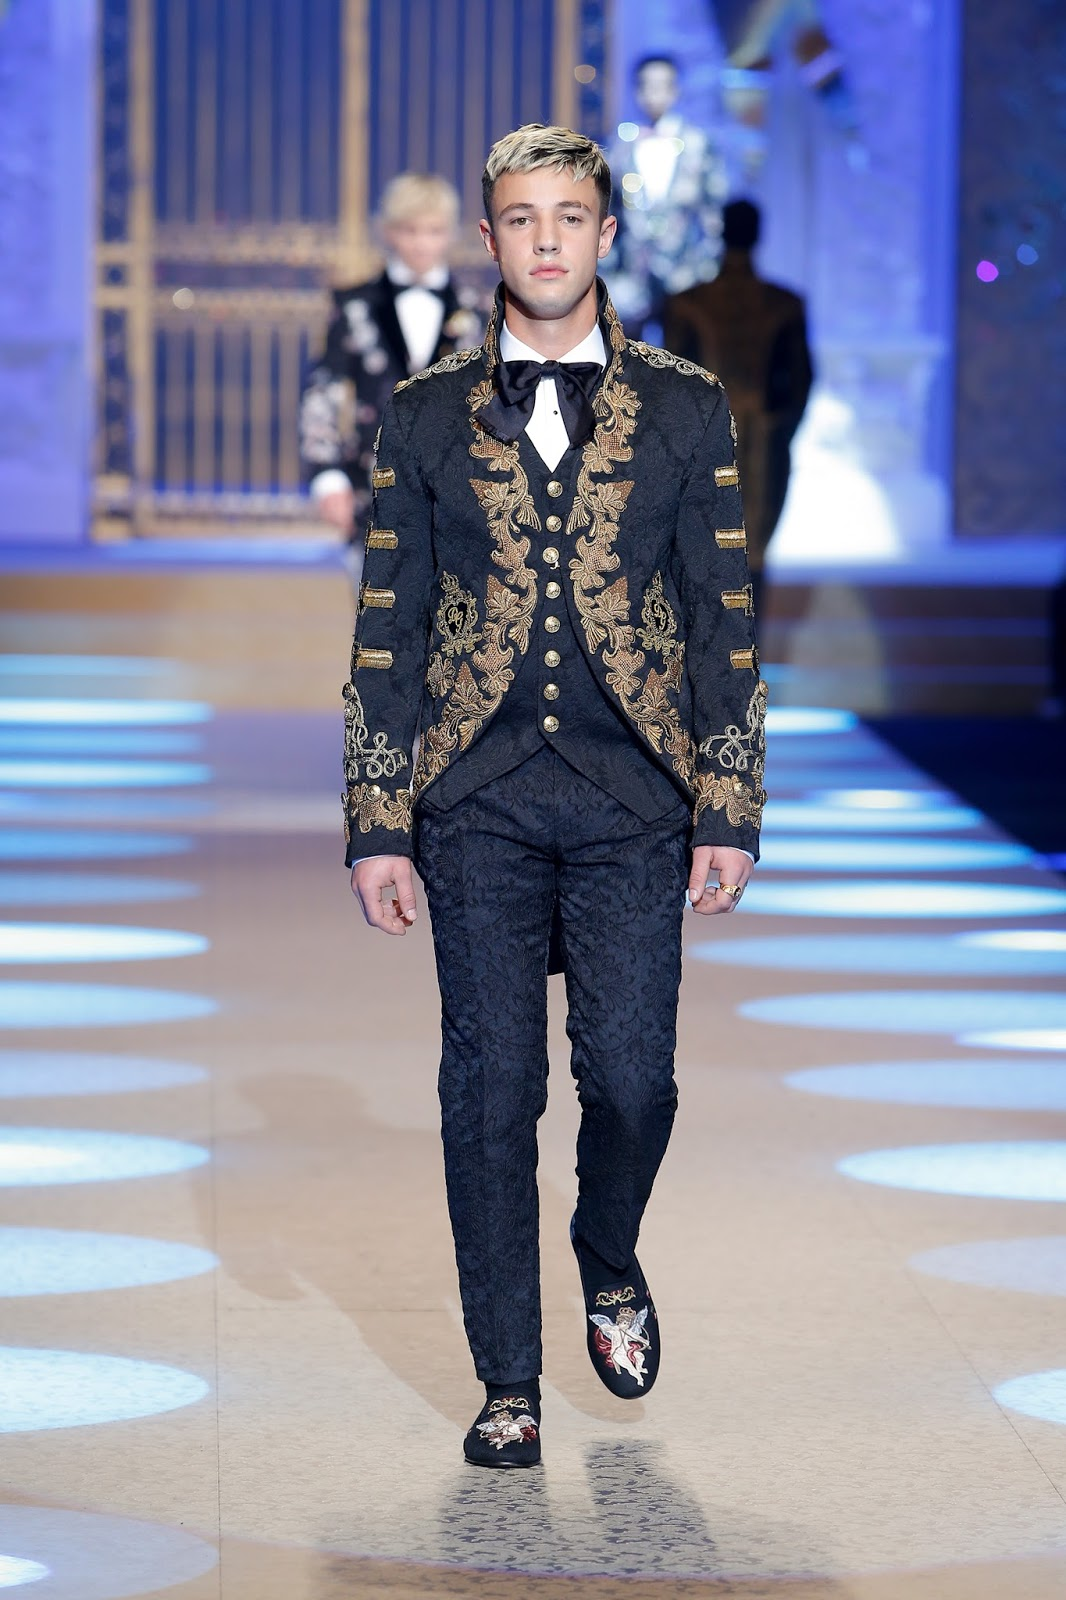 dolce gabbana, fall winter, otoño invierno, fashion show, Austin Mahone, Cameron Dallas, runway